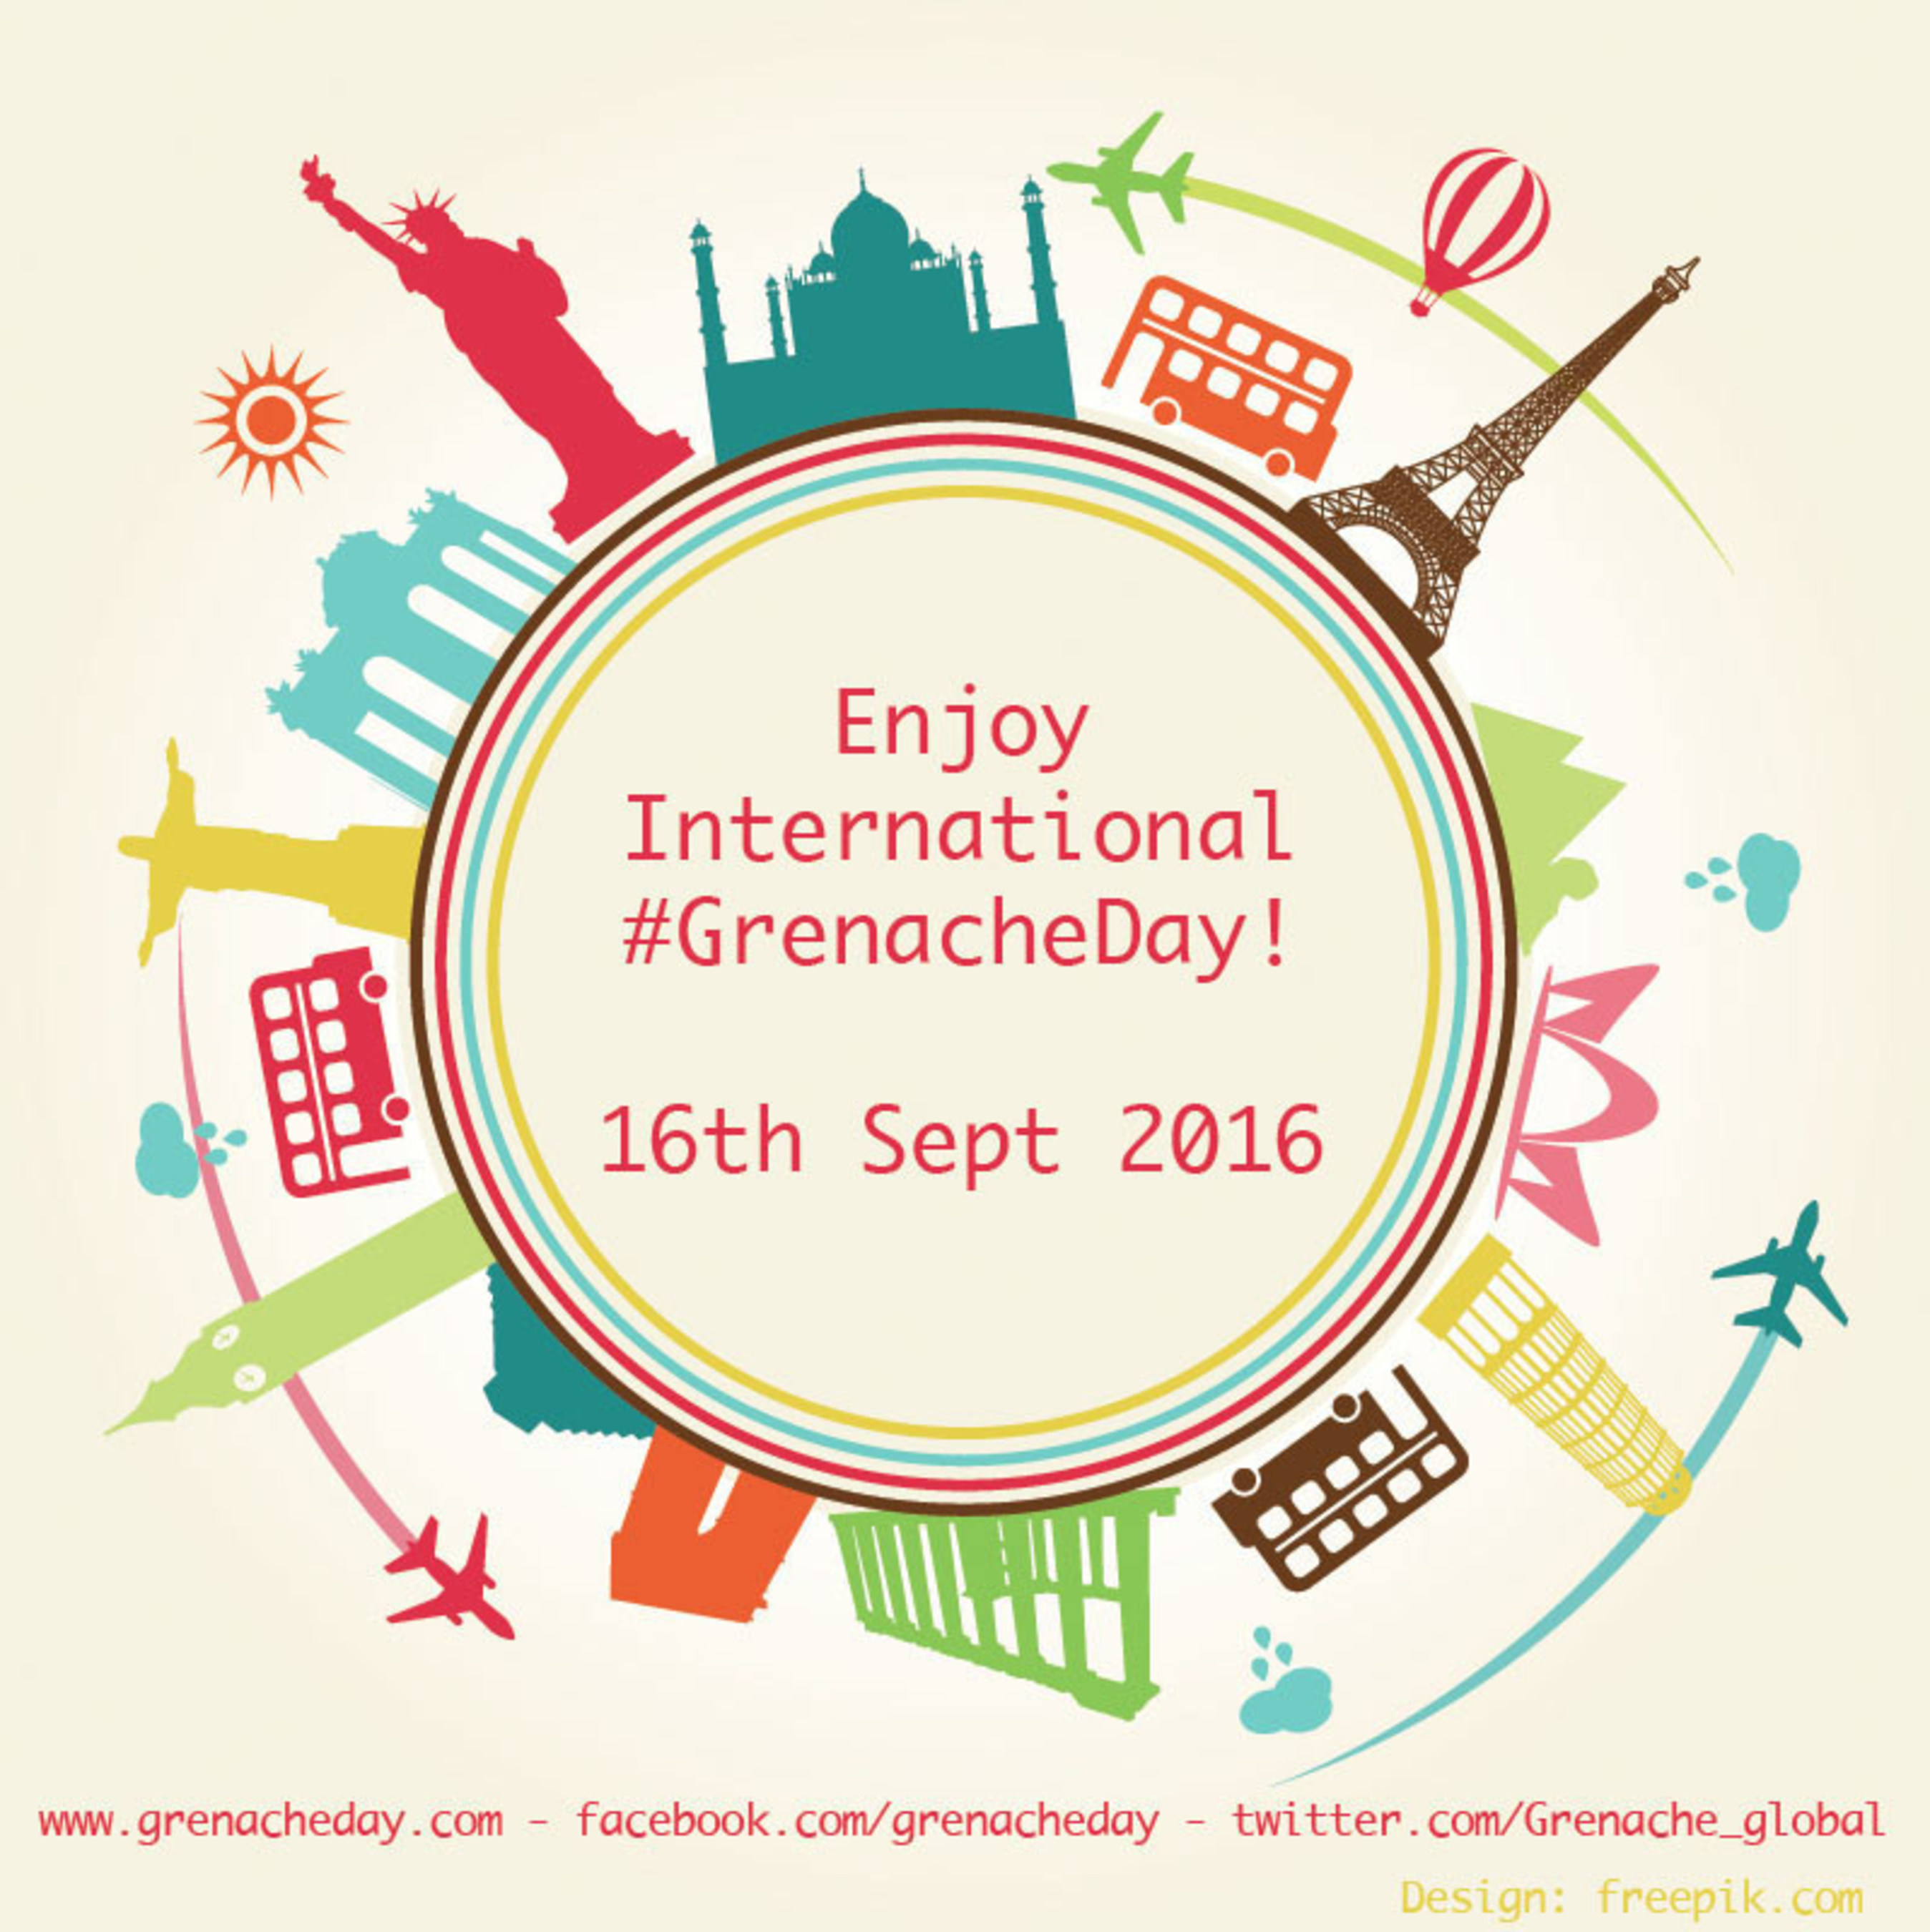 The 7th Annual International Grenache Day a.k.a #GrenacheDay on Friday, September 16th will be one of the biggest days of 2016 for wine lovers as it marks the worldwide day-long celebration of everything Grenache, one of the most widely planted and least known red grapes in the world.